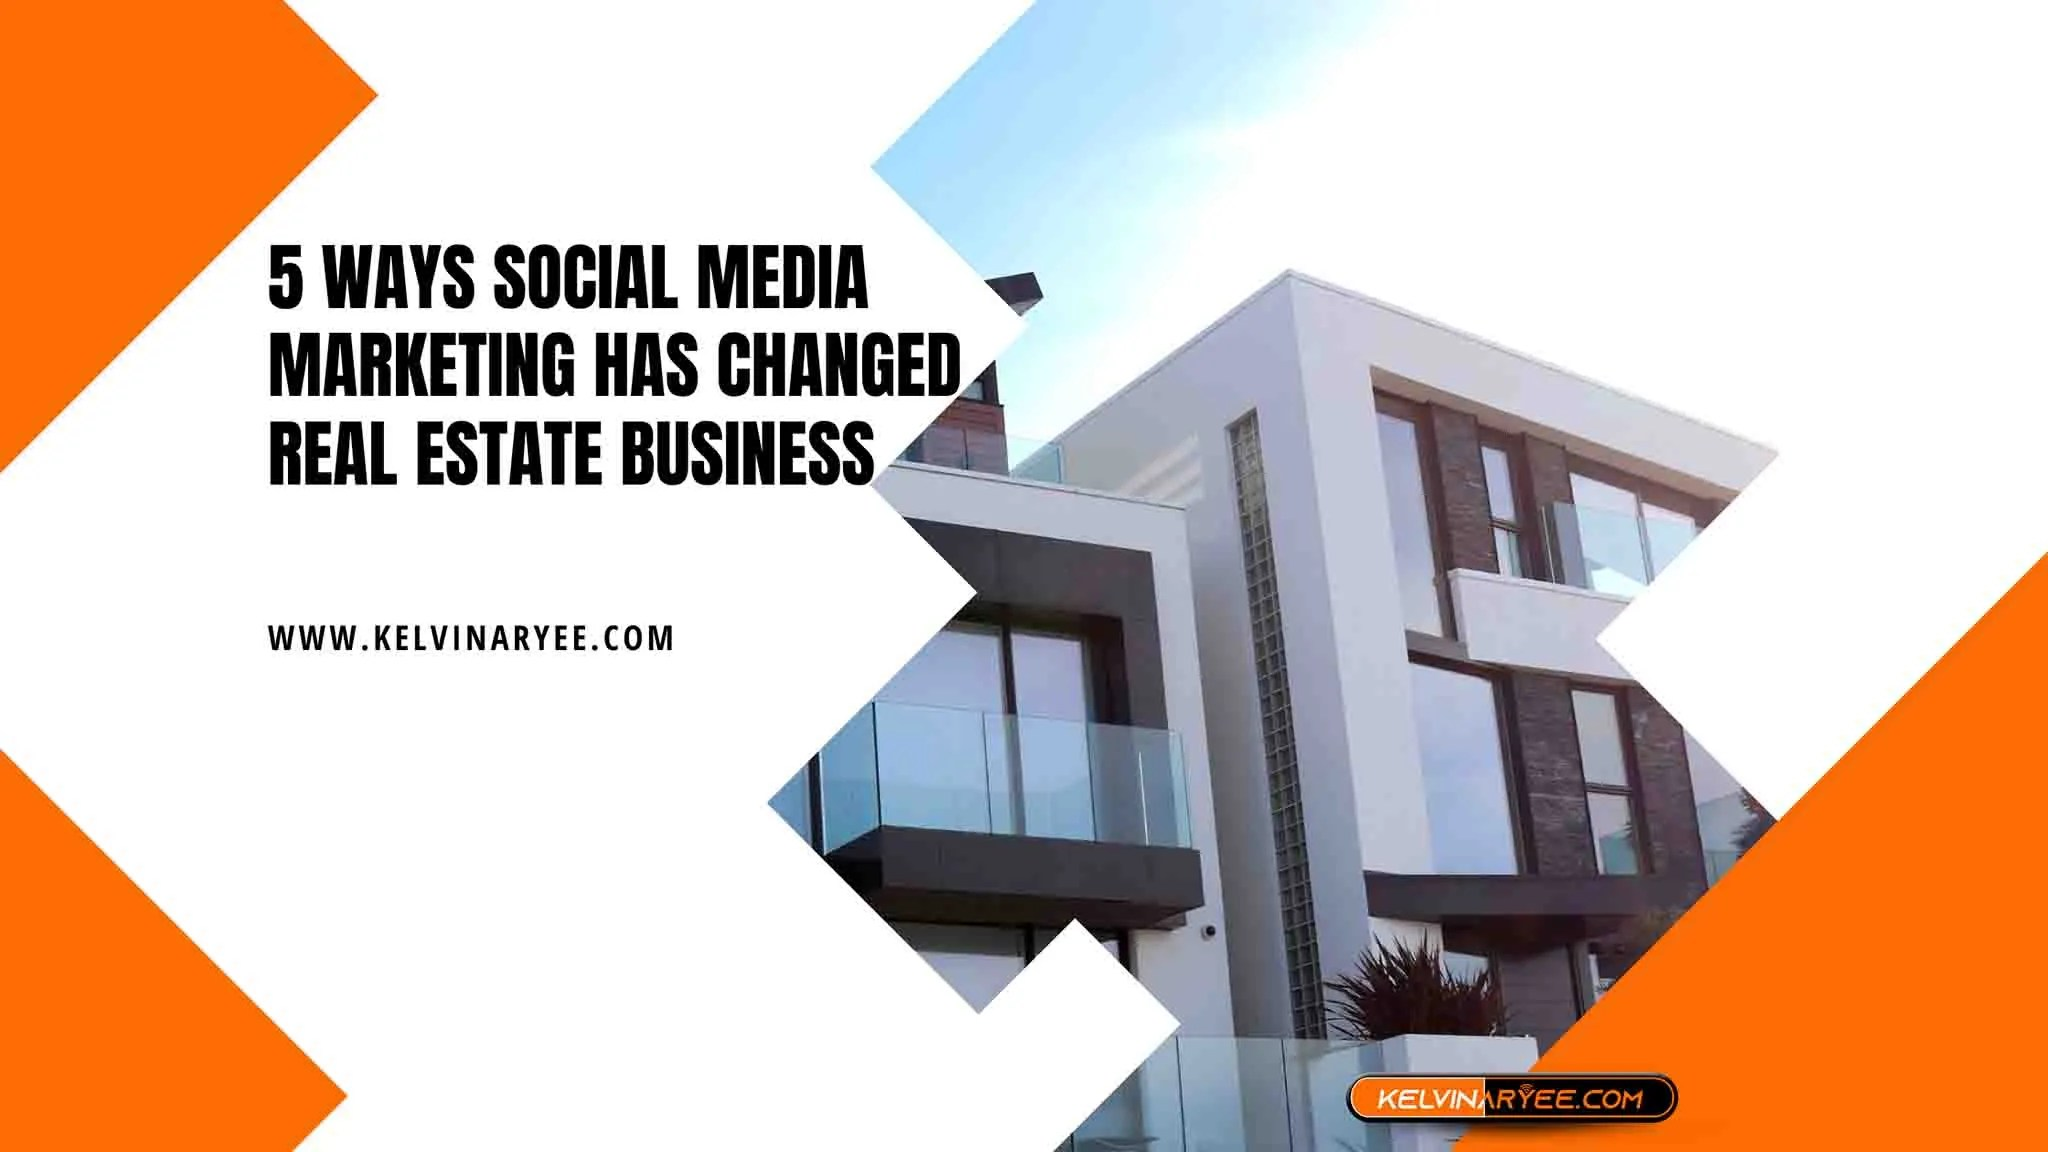 You are currently viewing 5 Ways Social Media Marketing Has Changed Real Estate Business